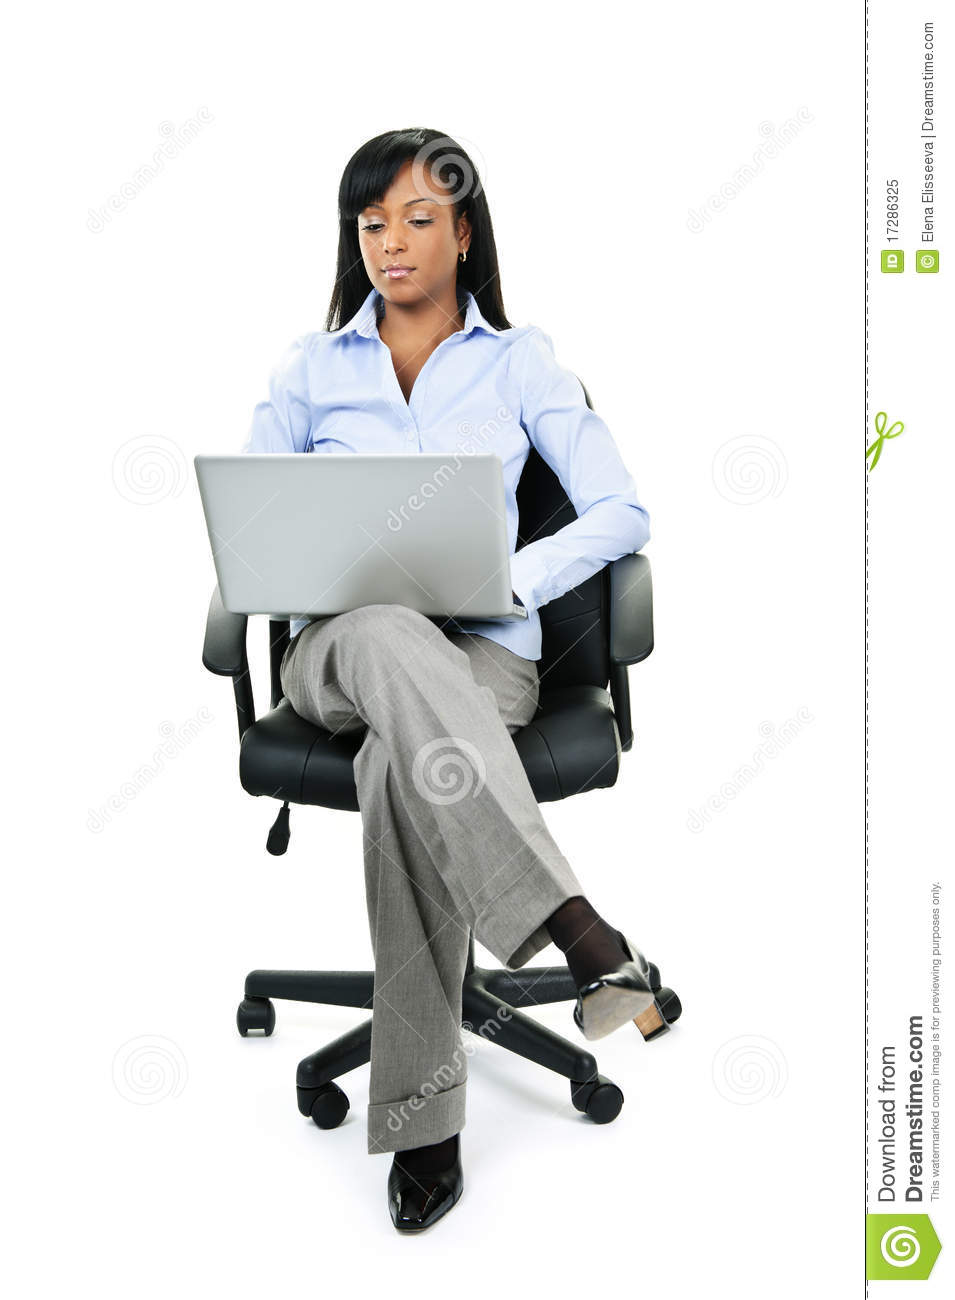 Woman Sitting In Office Chair With Computer Royalty Free